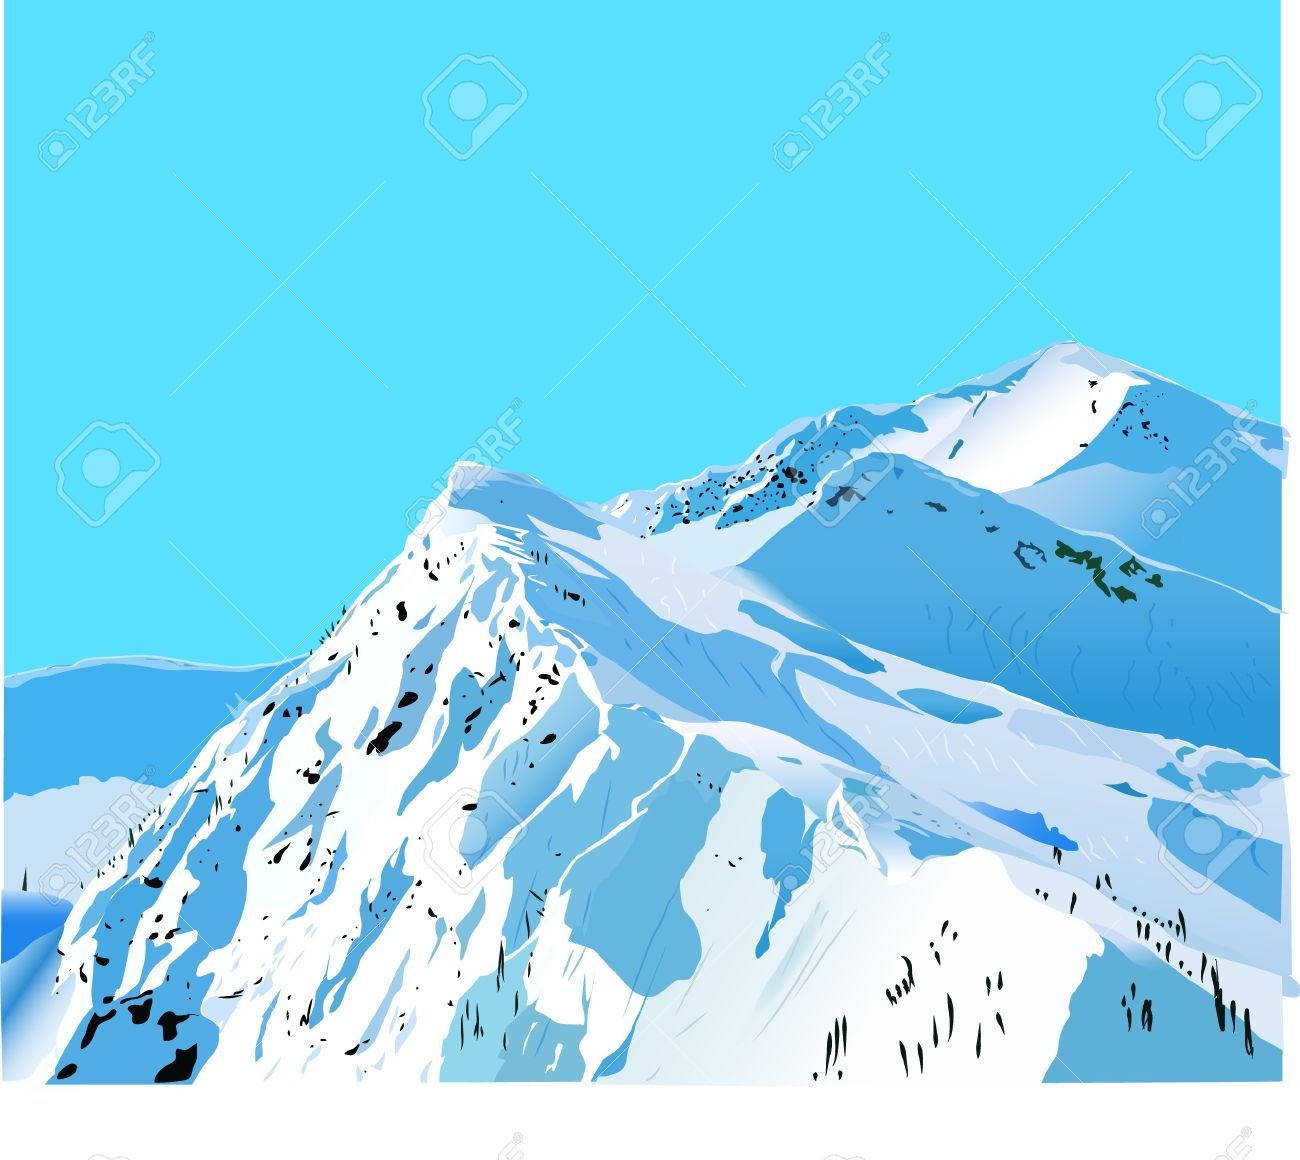 Snow Covered Mountain Clipart.